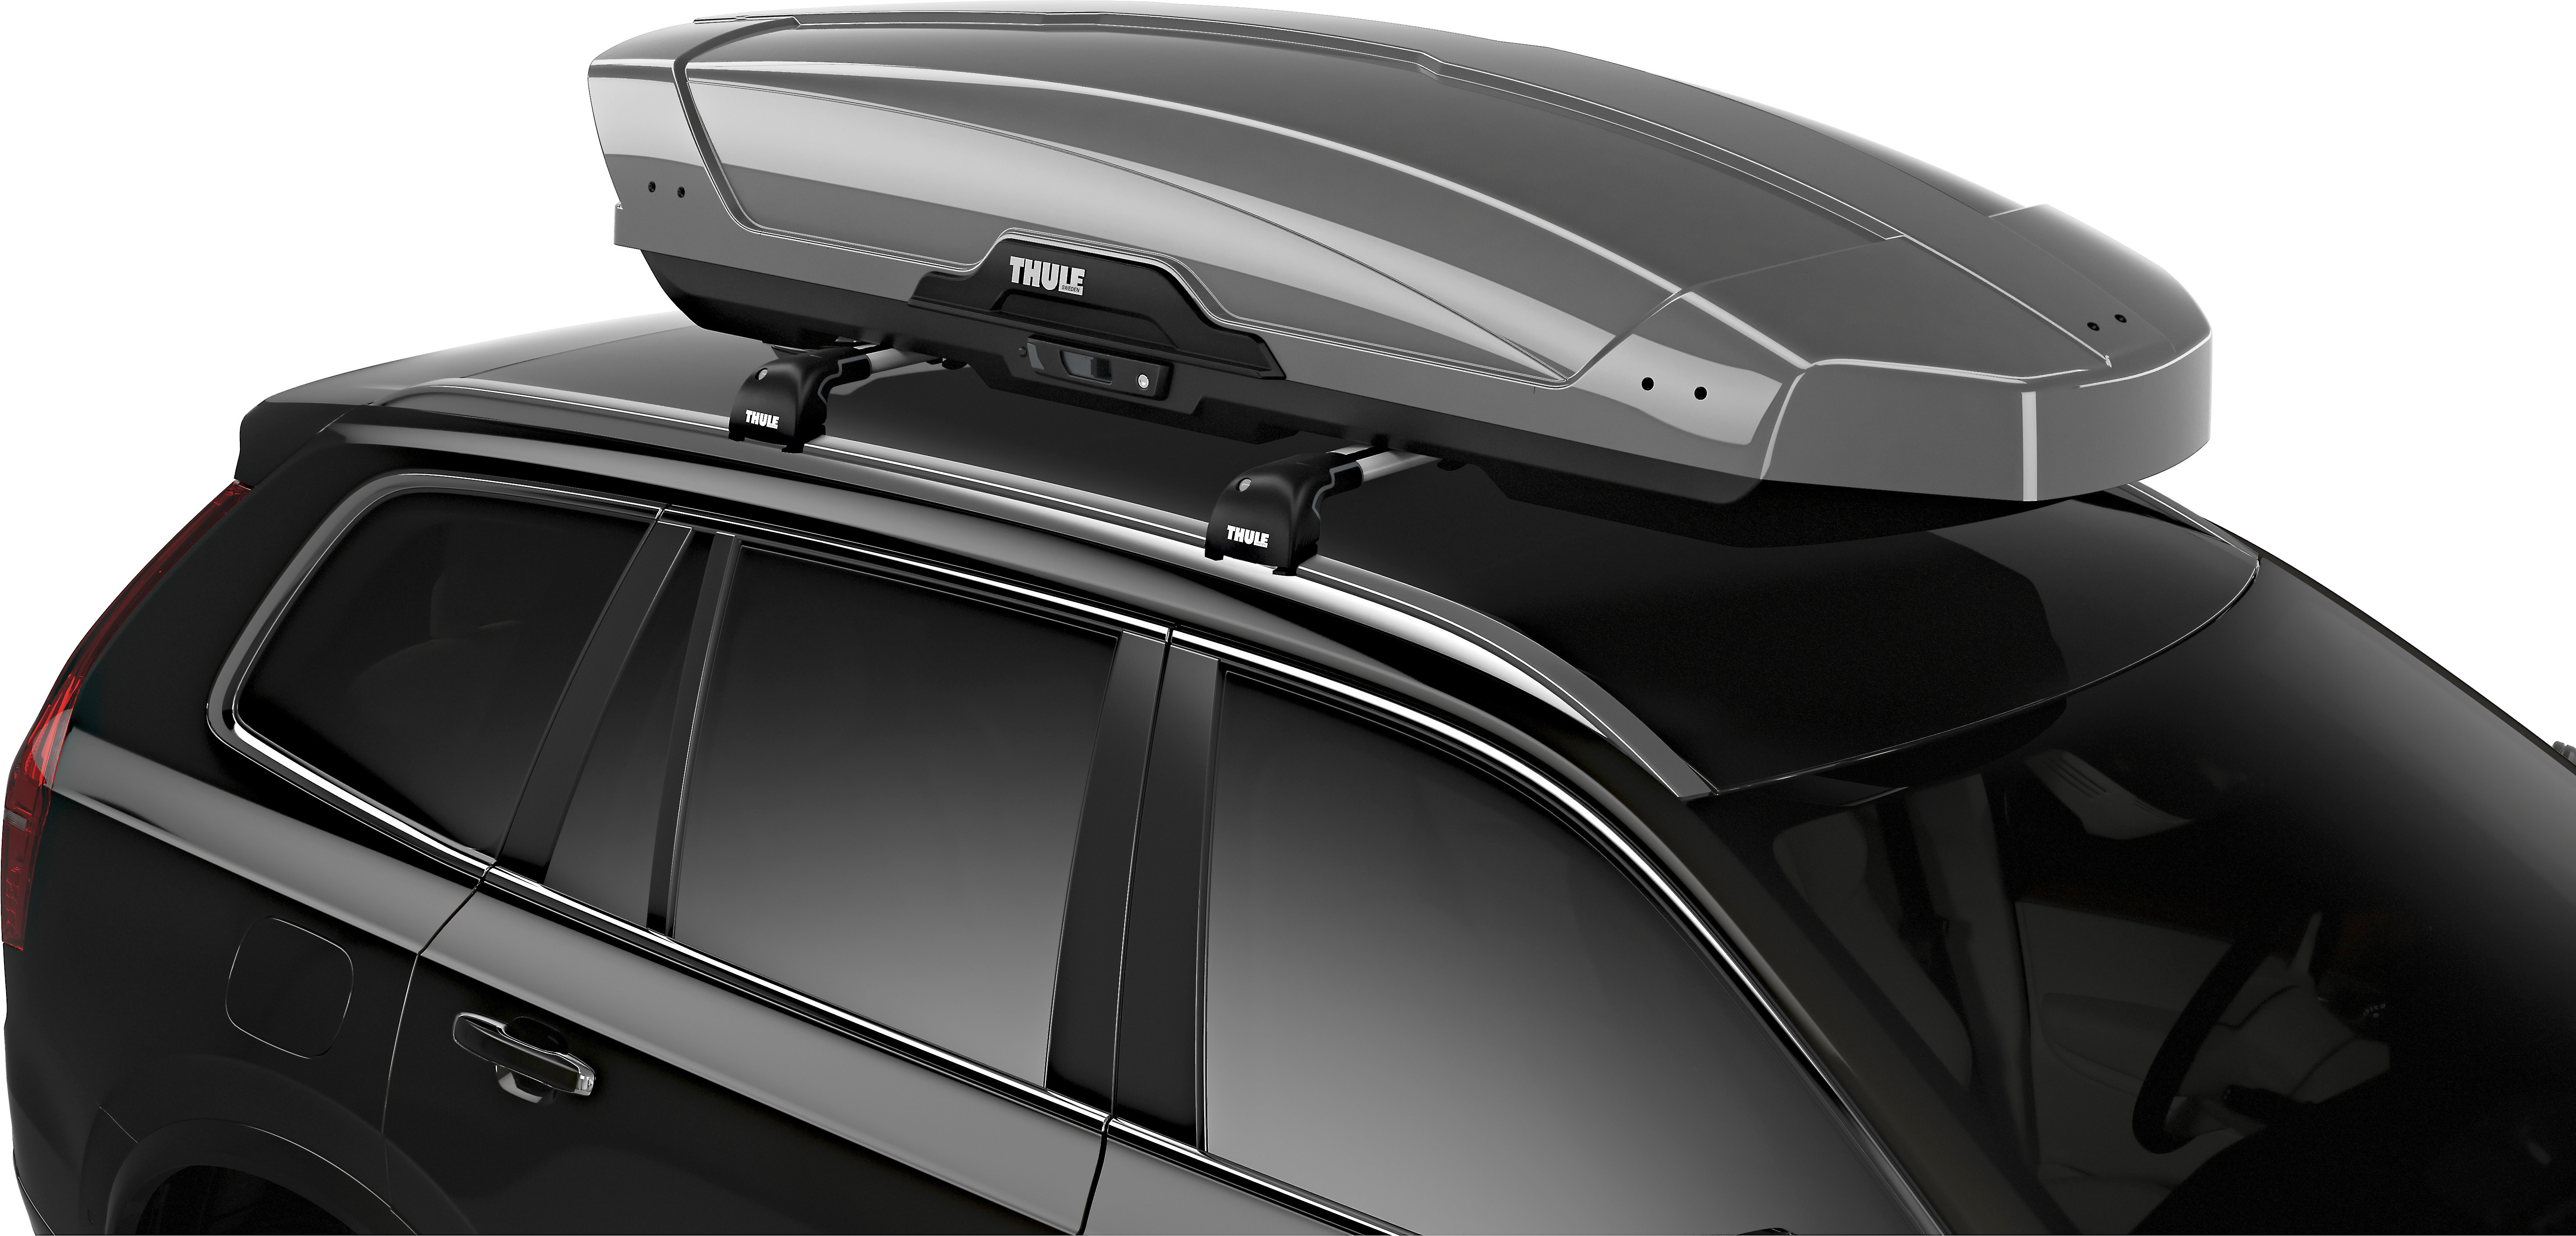 Thule Motion Xt Rooftop Cargo Carrier Xl Titan Glossy Available In 4 Sizes And 3 Colors At Crutchfield